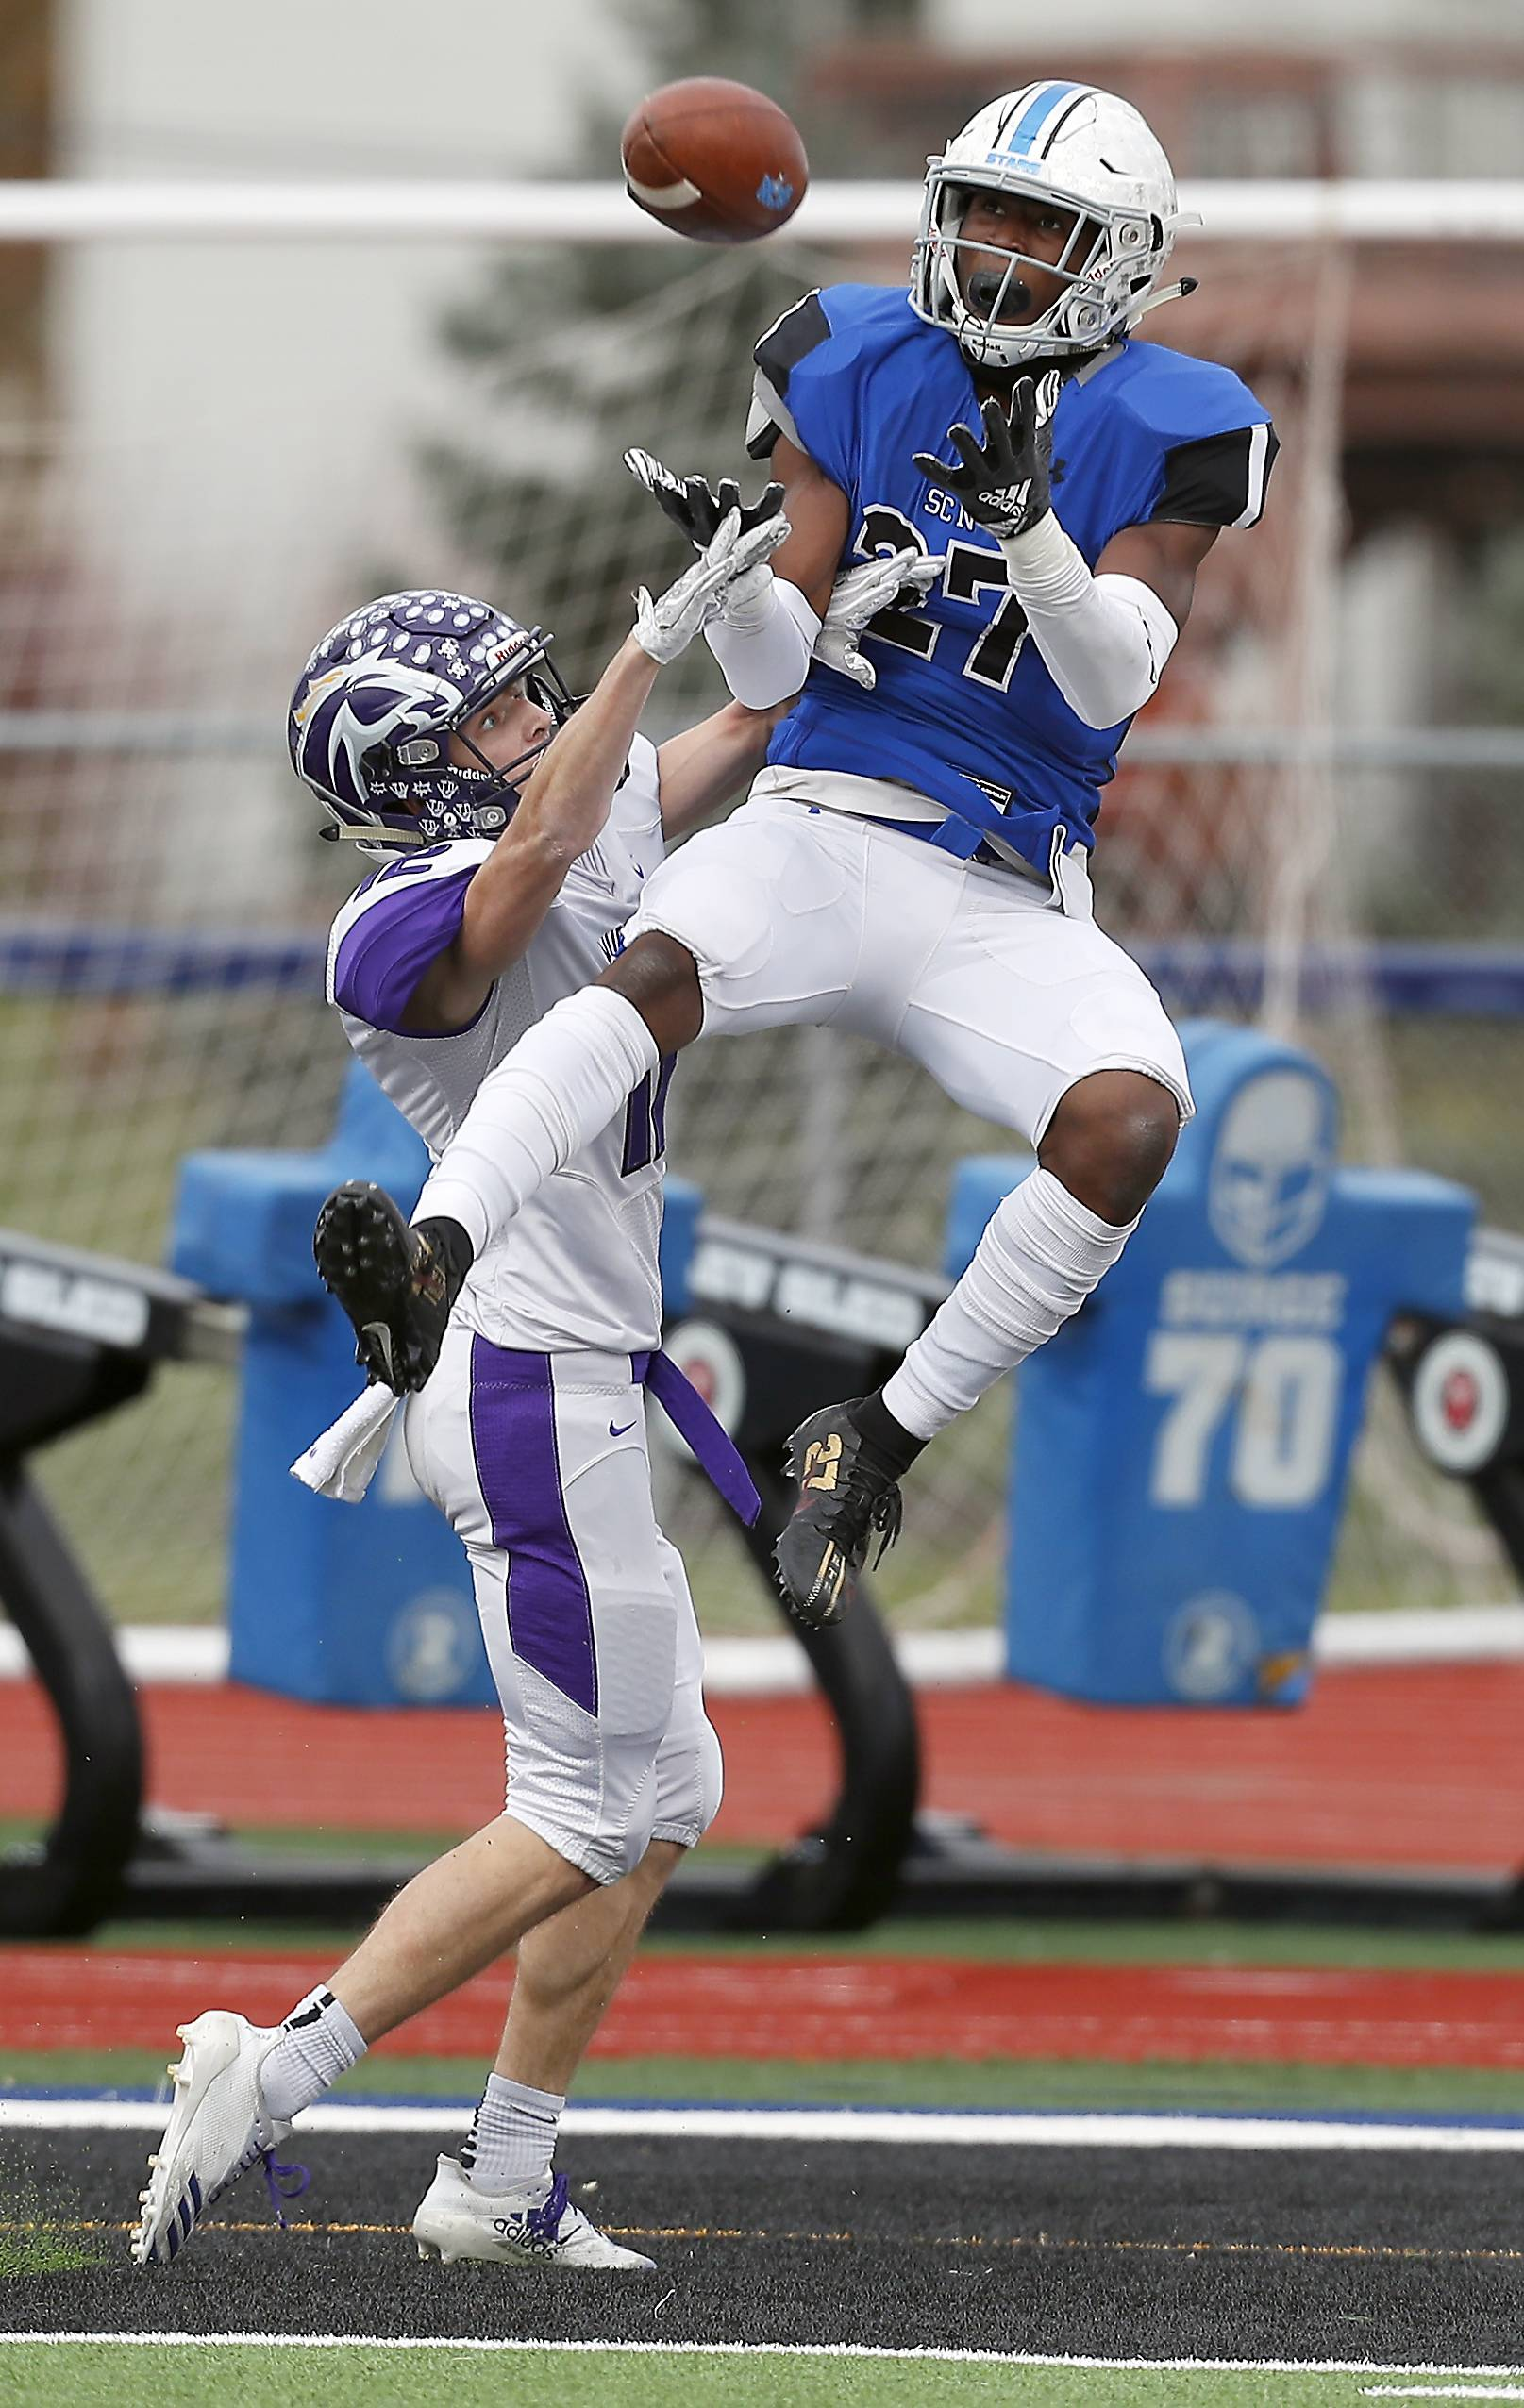 St. Charles North's Tyler Nubin (27) reels in a touchdown pass over Rolling Meadows' Charlie Svoboda (12) Saturday during IHSA Class 7A playoff football in St. Charles.